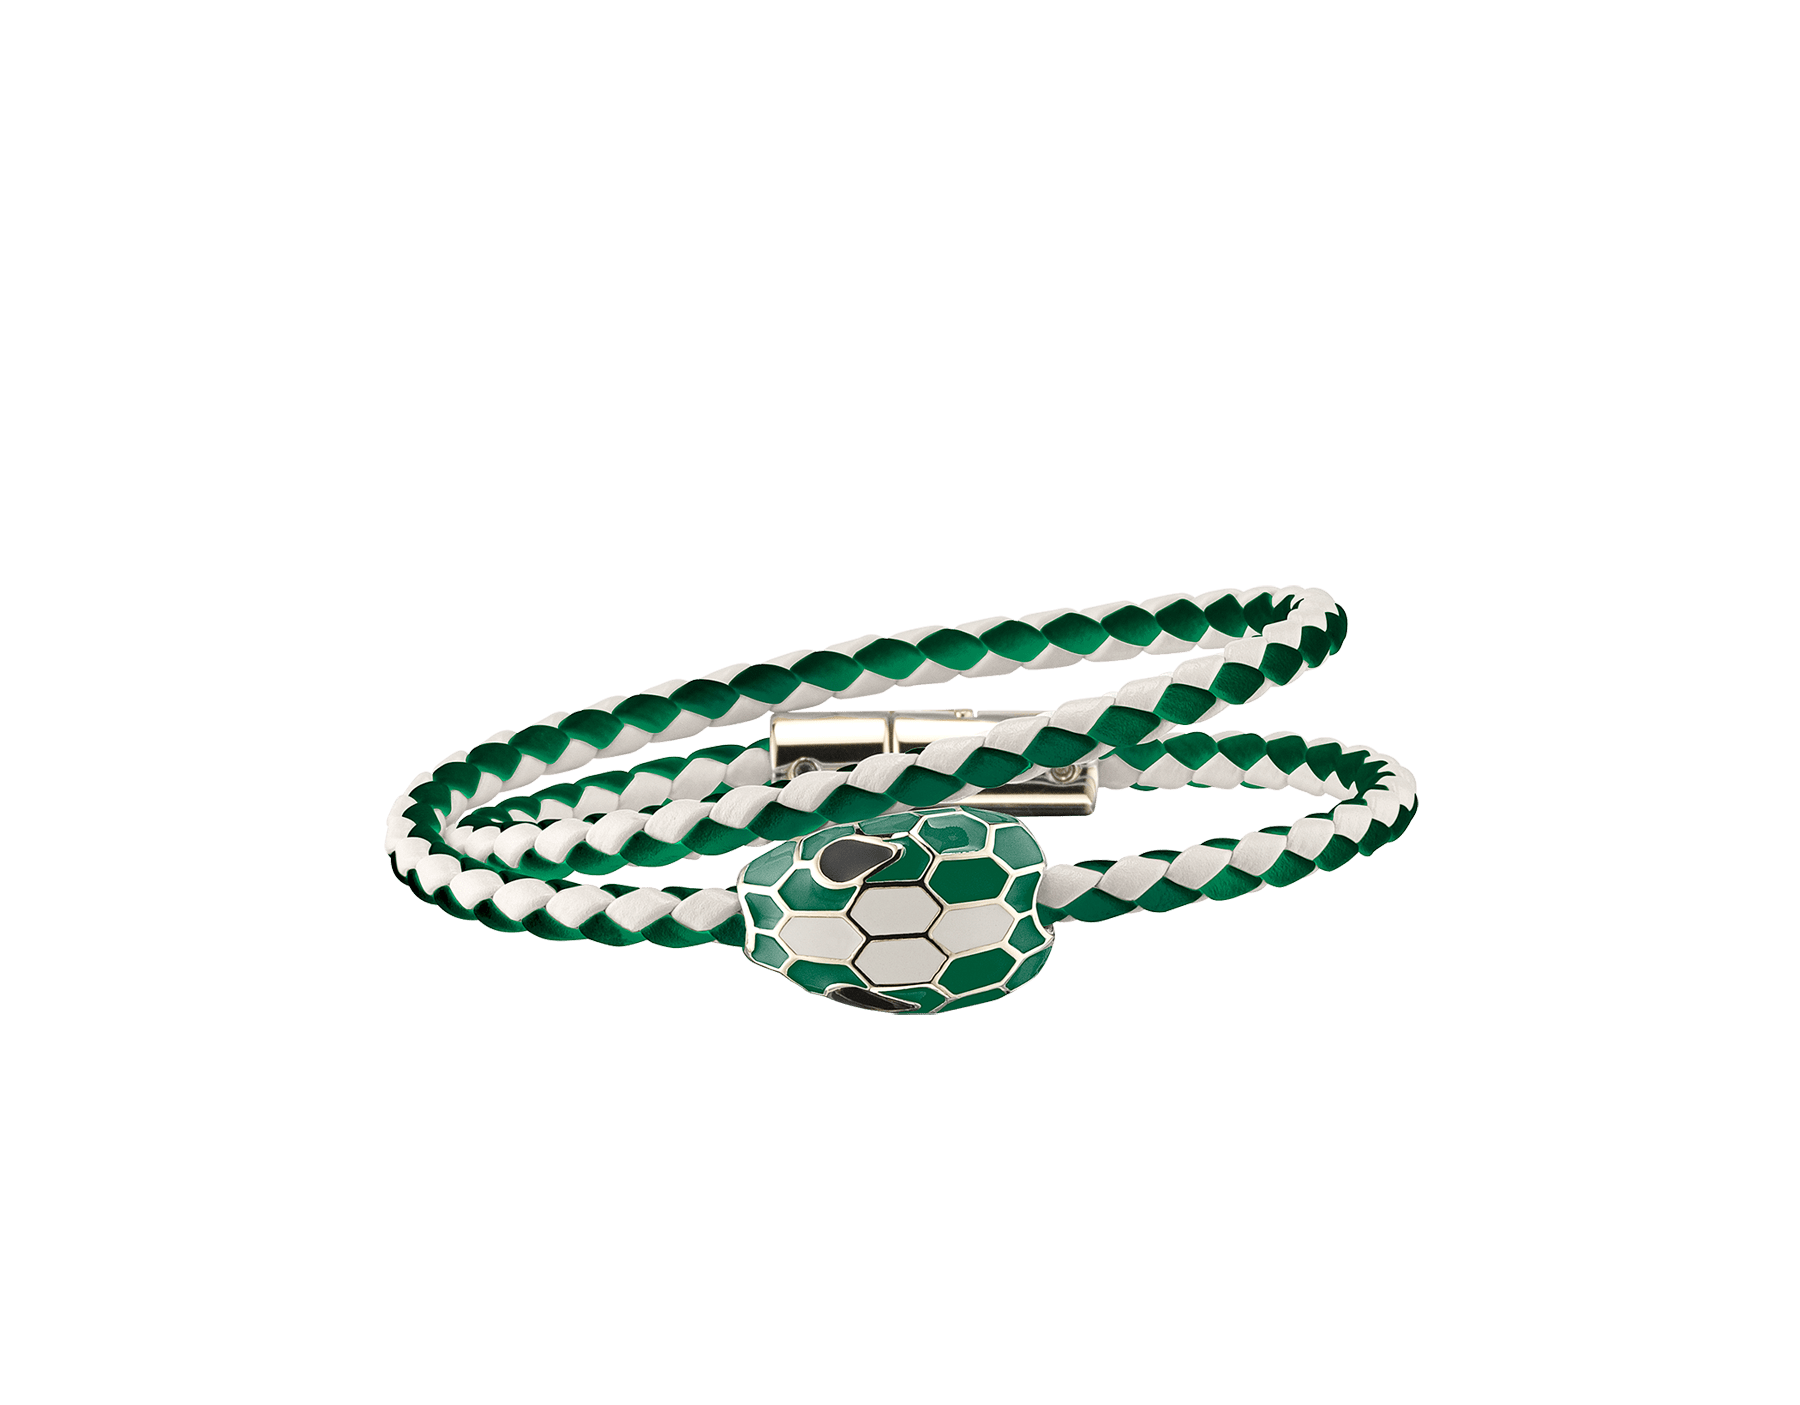 Serpenti Forever multi-coiled braid bracelet in emerald green and white agate woven calf leather, with the iconic snakehead décor in emerald green and white agate enamel with seducing black enamel eyes. SerpDoubleBraid-WCL-AGWA image 1